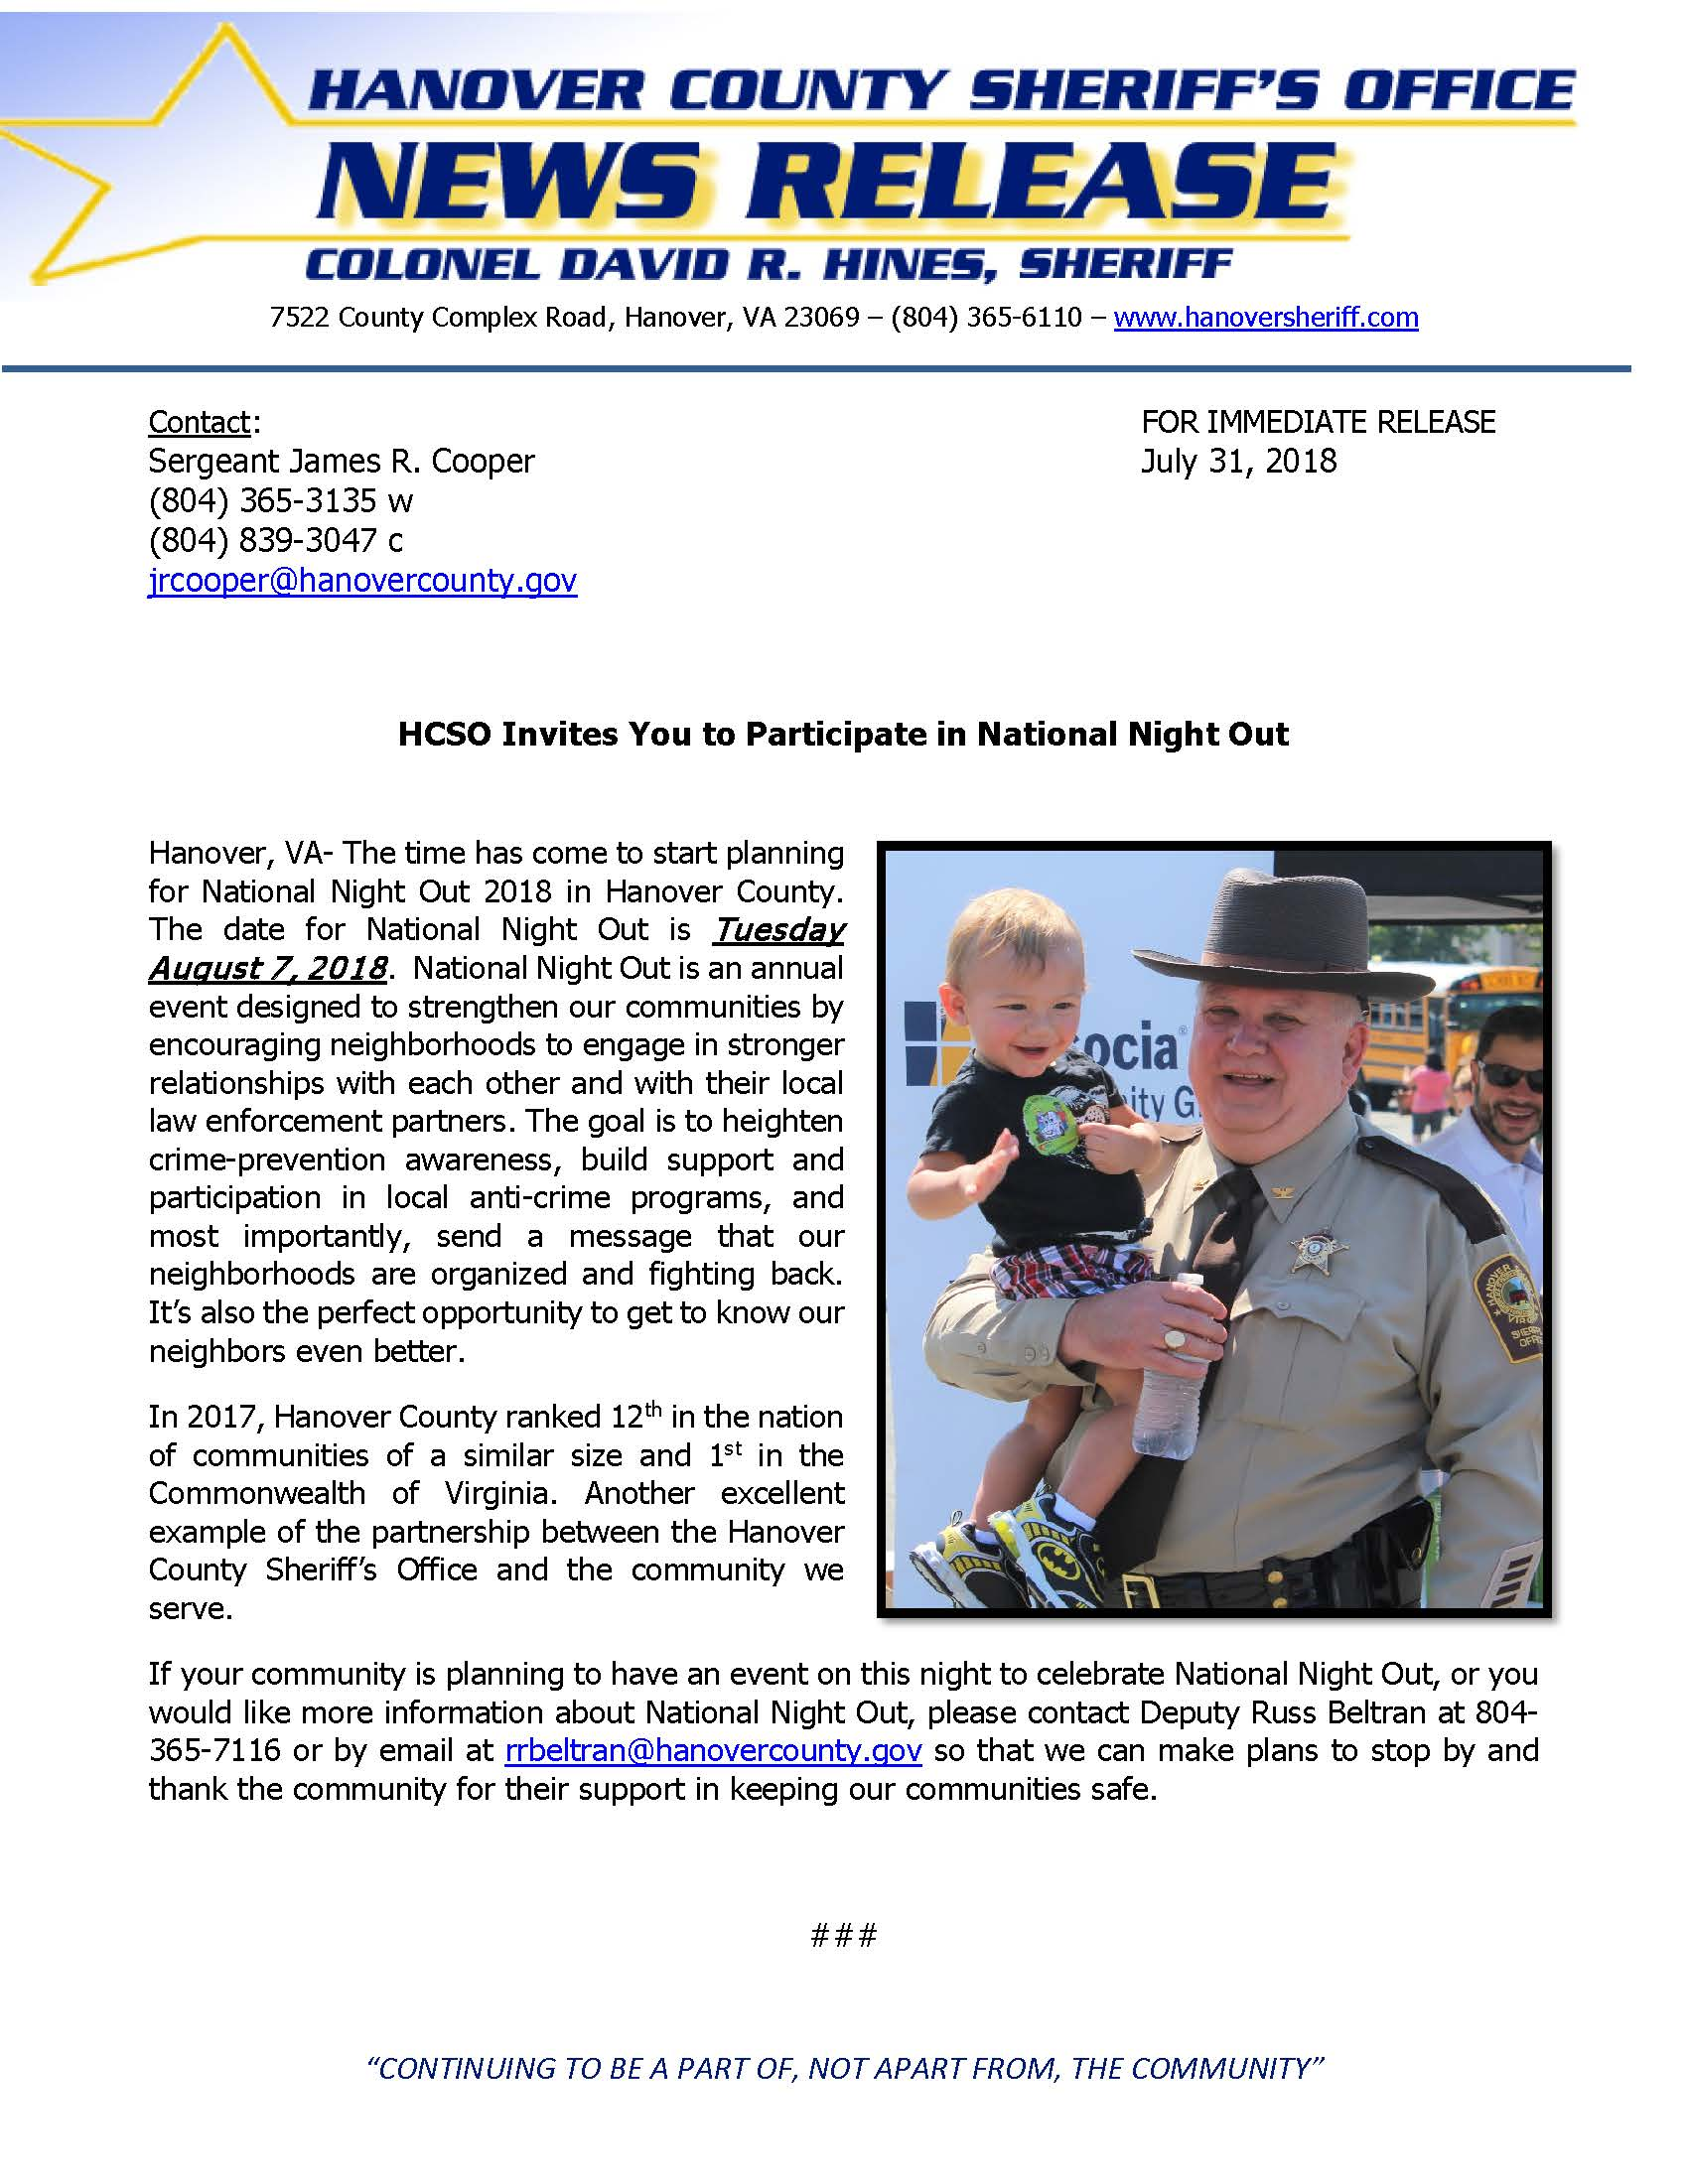 HCSO - National Night Out 2018